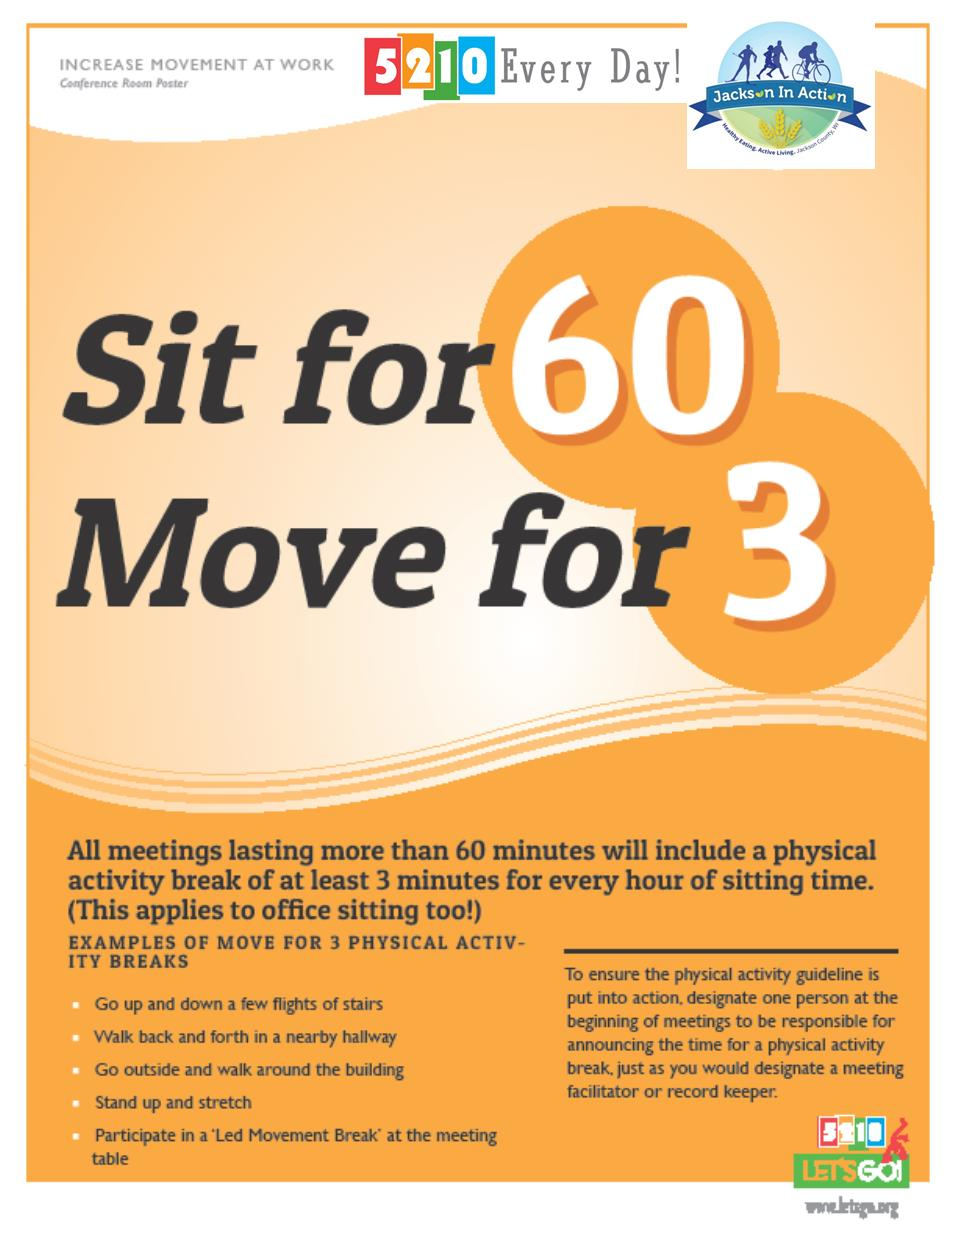 Sit for 60 Move for 3.jpg